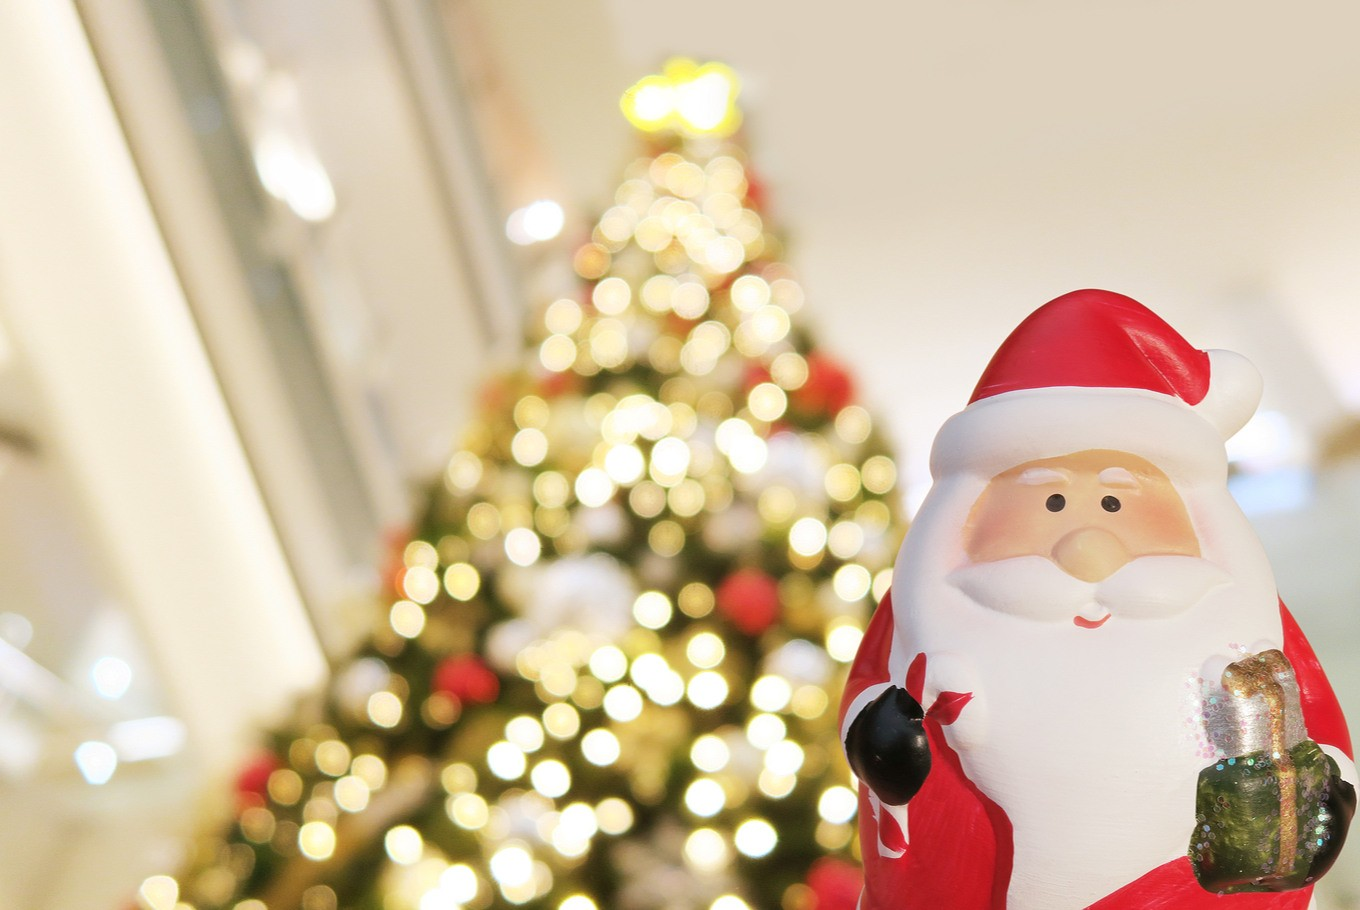 INSIGHT: Politics of Muslim identity over Santa outfits